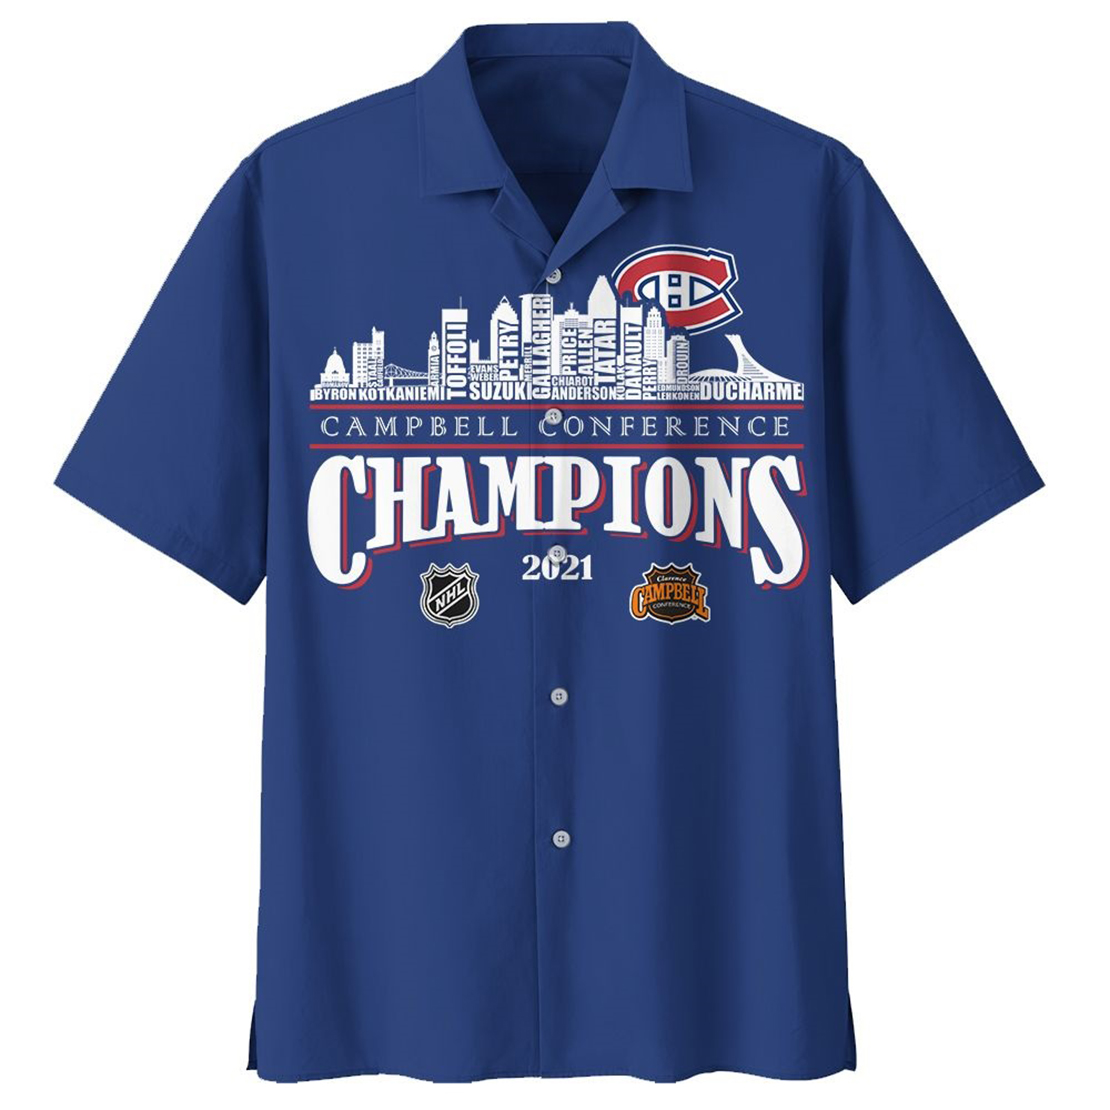 Montreal Canadiens Campbell conference champions 2021 hawaiian shirt - Picture 1